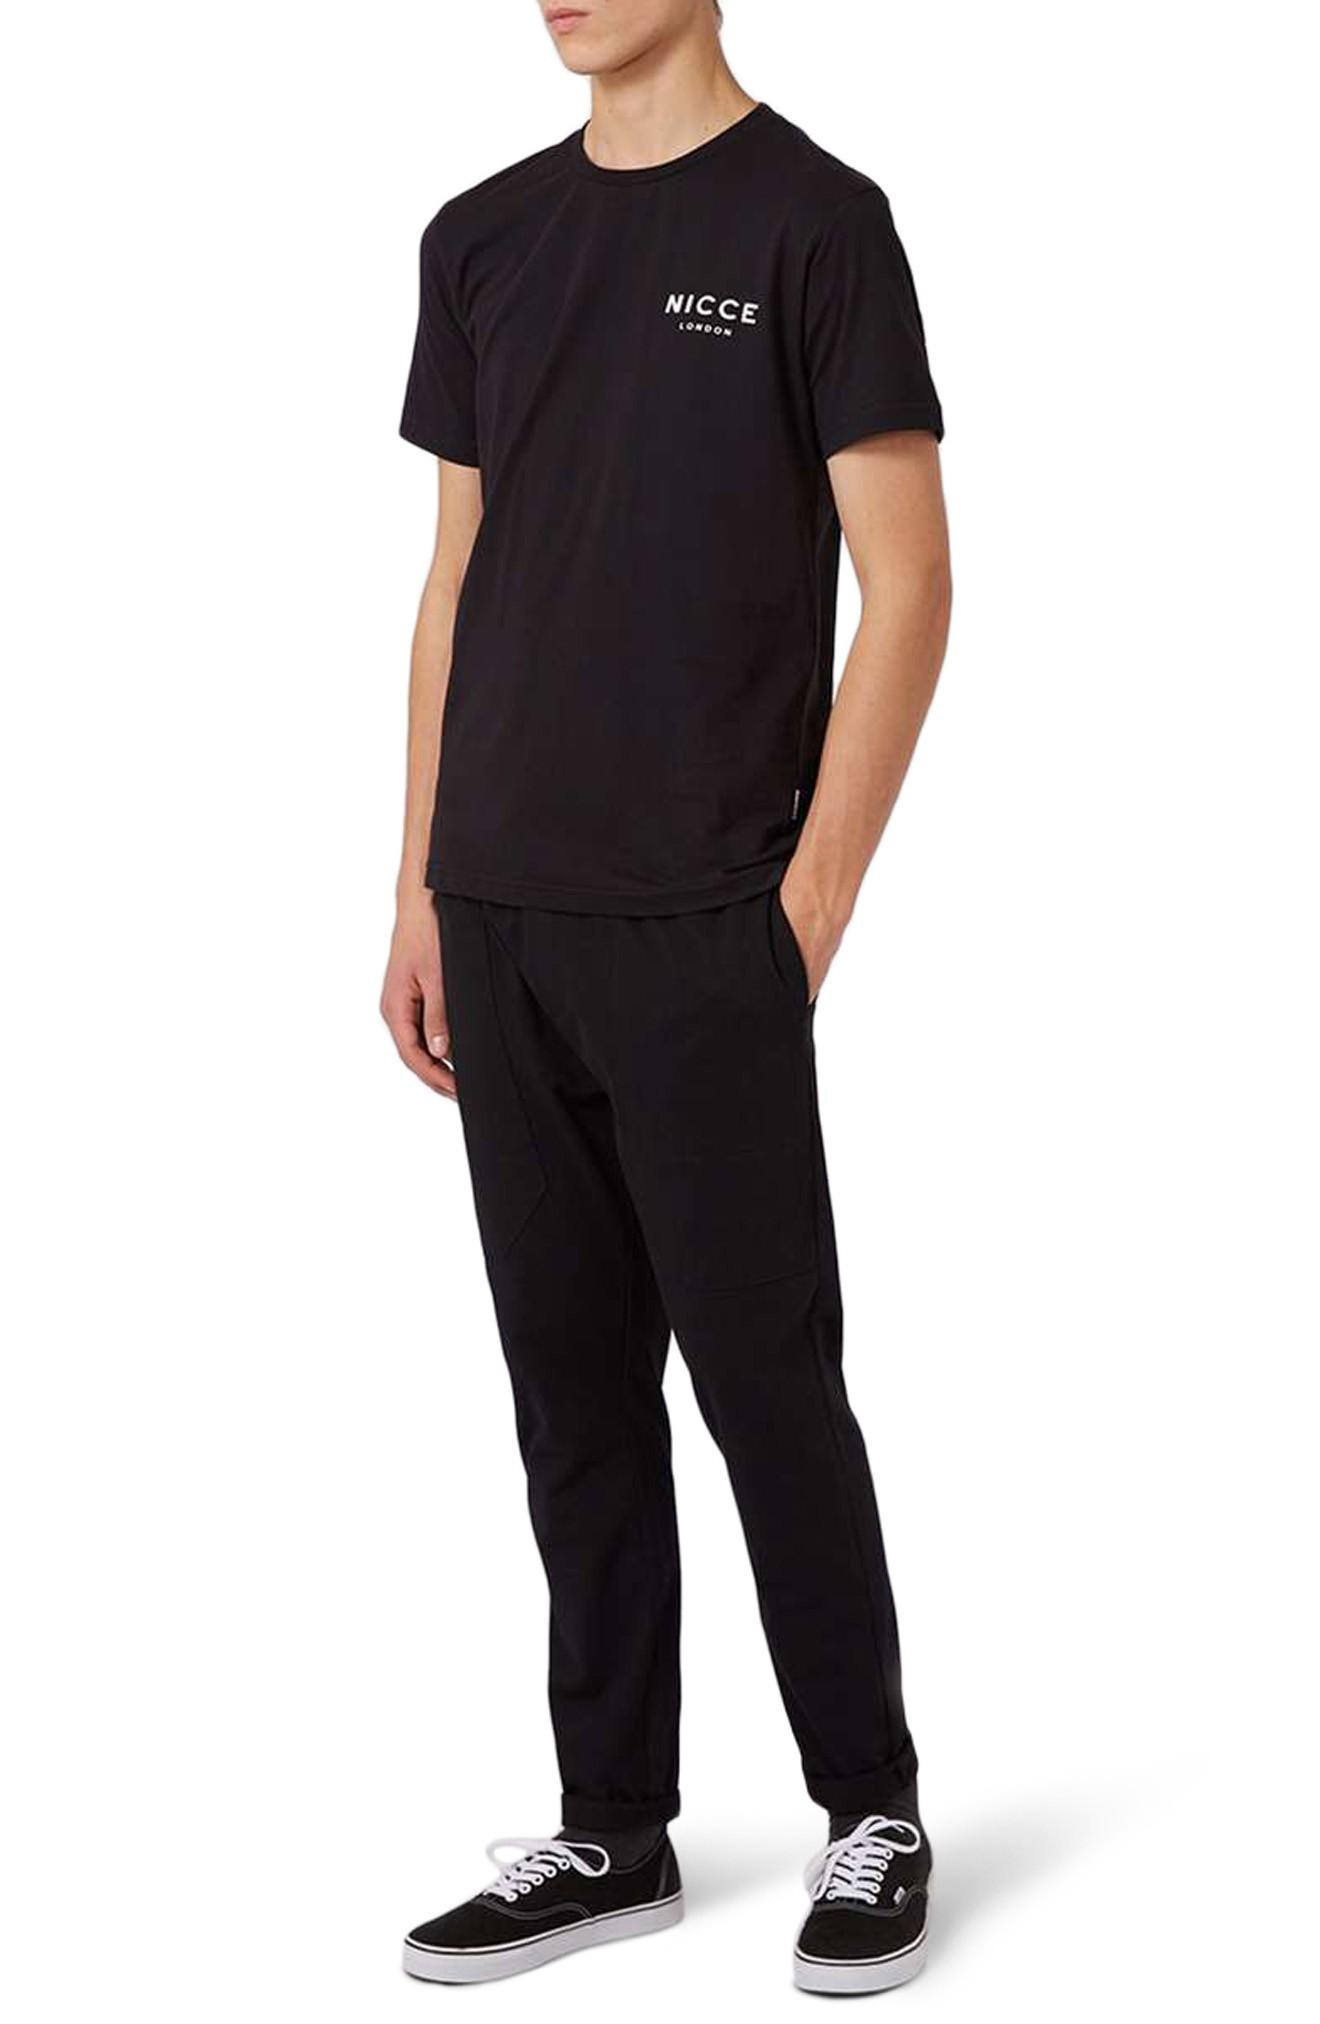 Topman Nicce Graphic T-shirt In Black